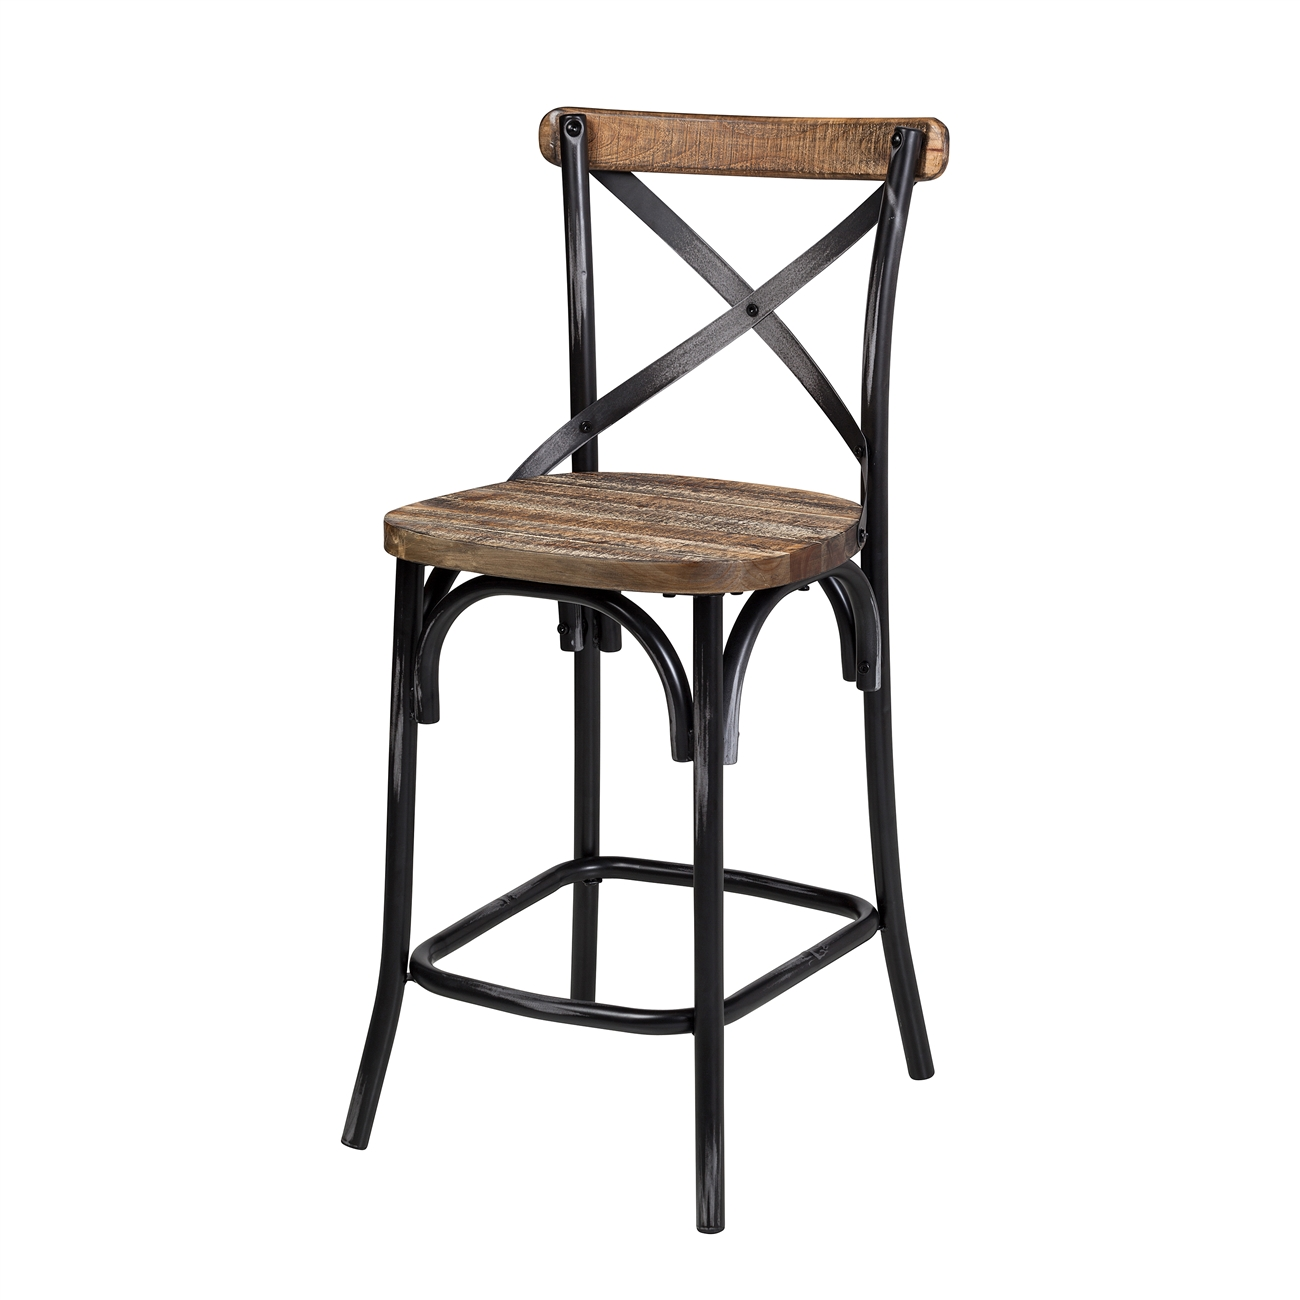 Groovy Rustic Reclaimed Pine Counter Stool The Khazana Home Austin Furniture Store Pdpeps Interior Chair Design Pdpepsorg